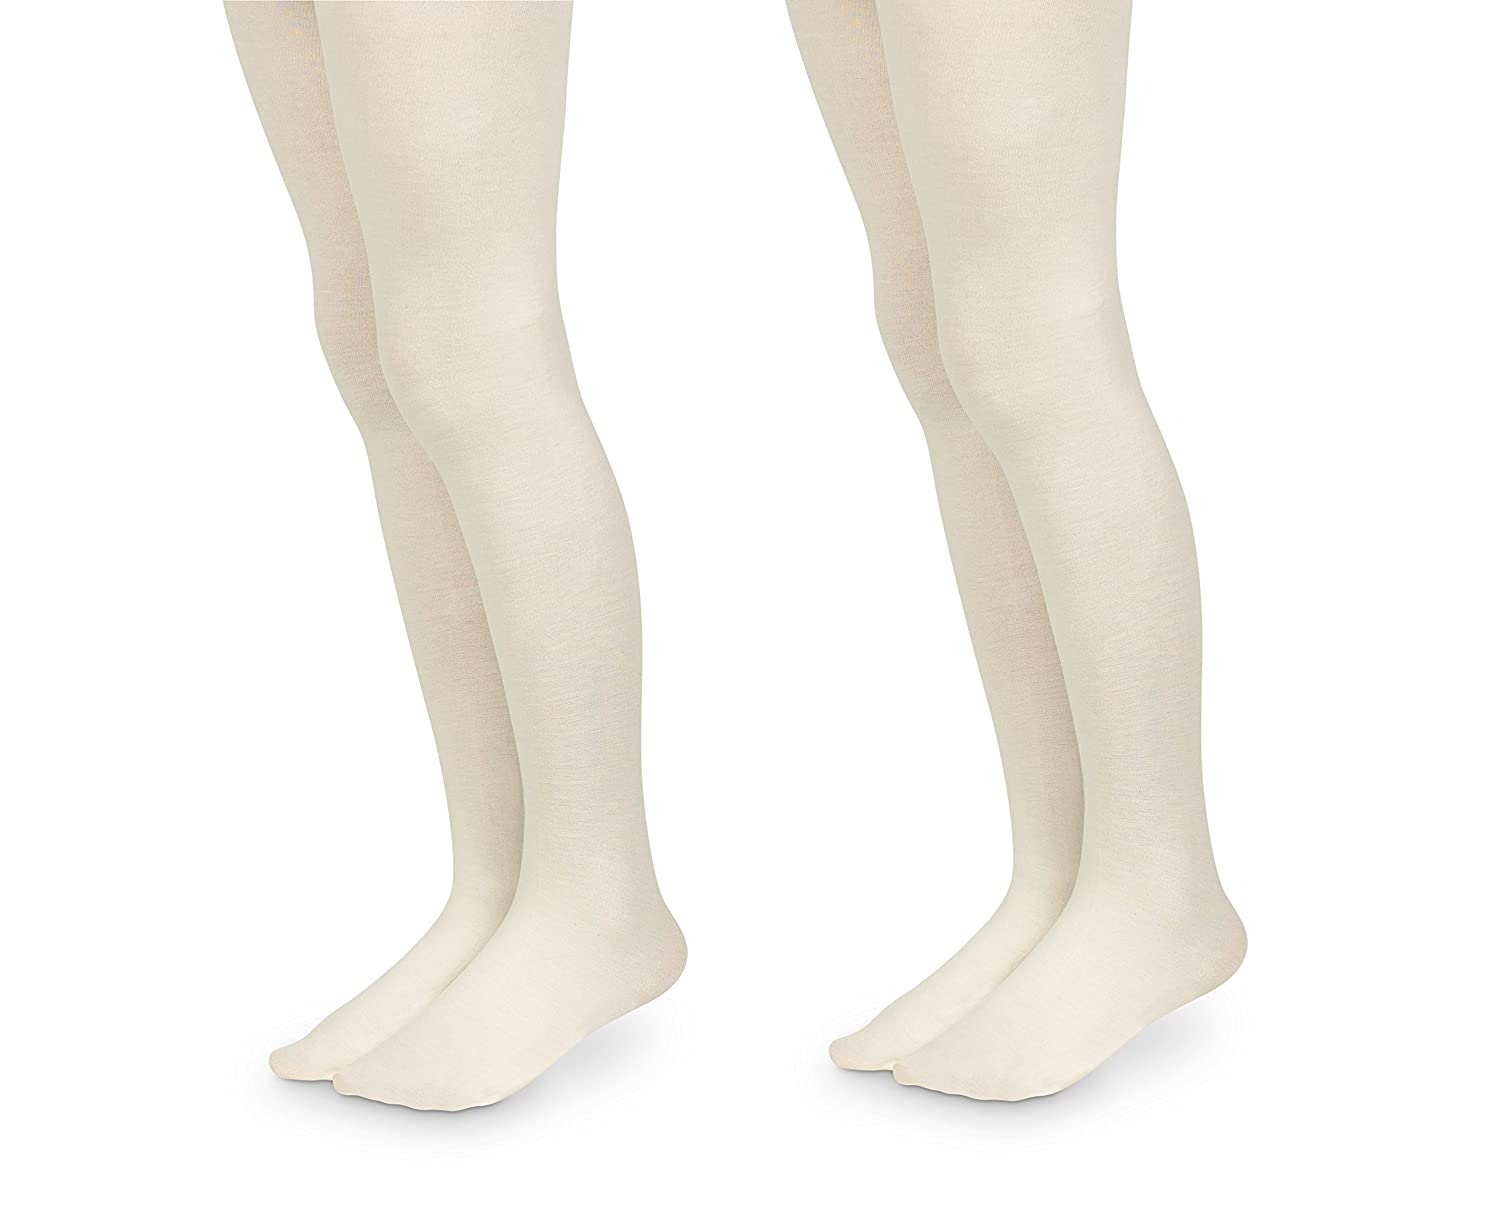 Jefferies Socks Girls Pro Ballet Dance Ultra Soft Microfiber Footed Tights 2 Pair Pack